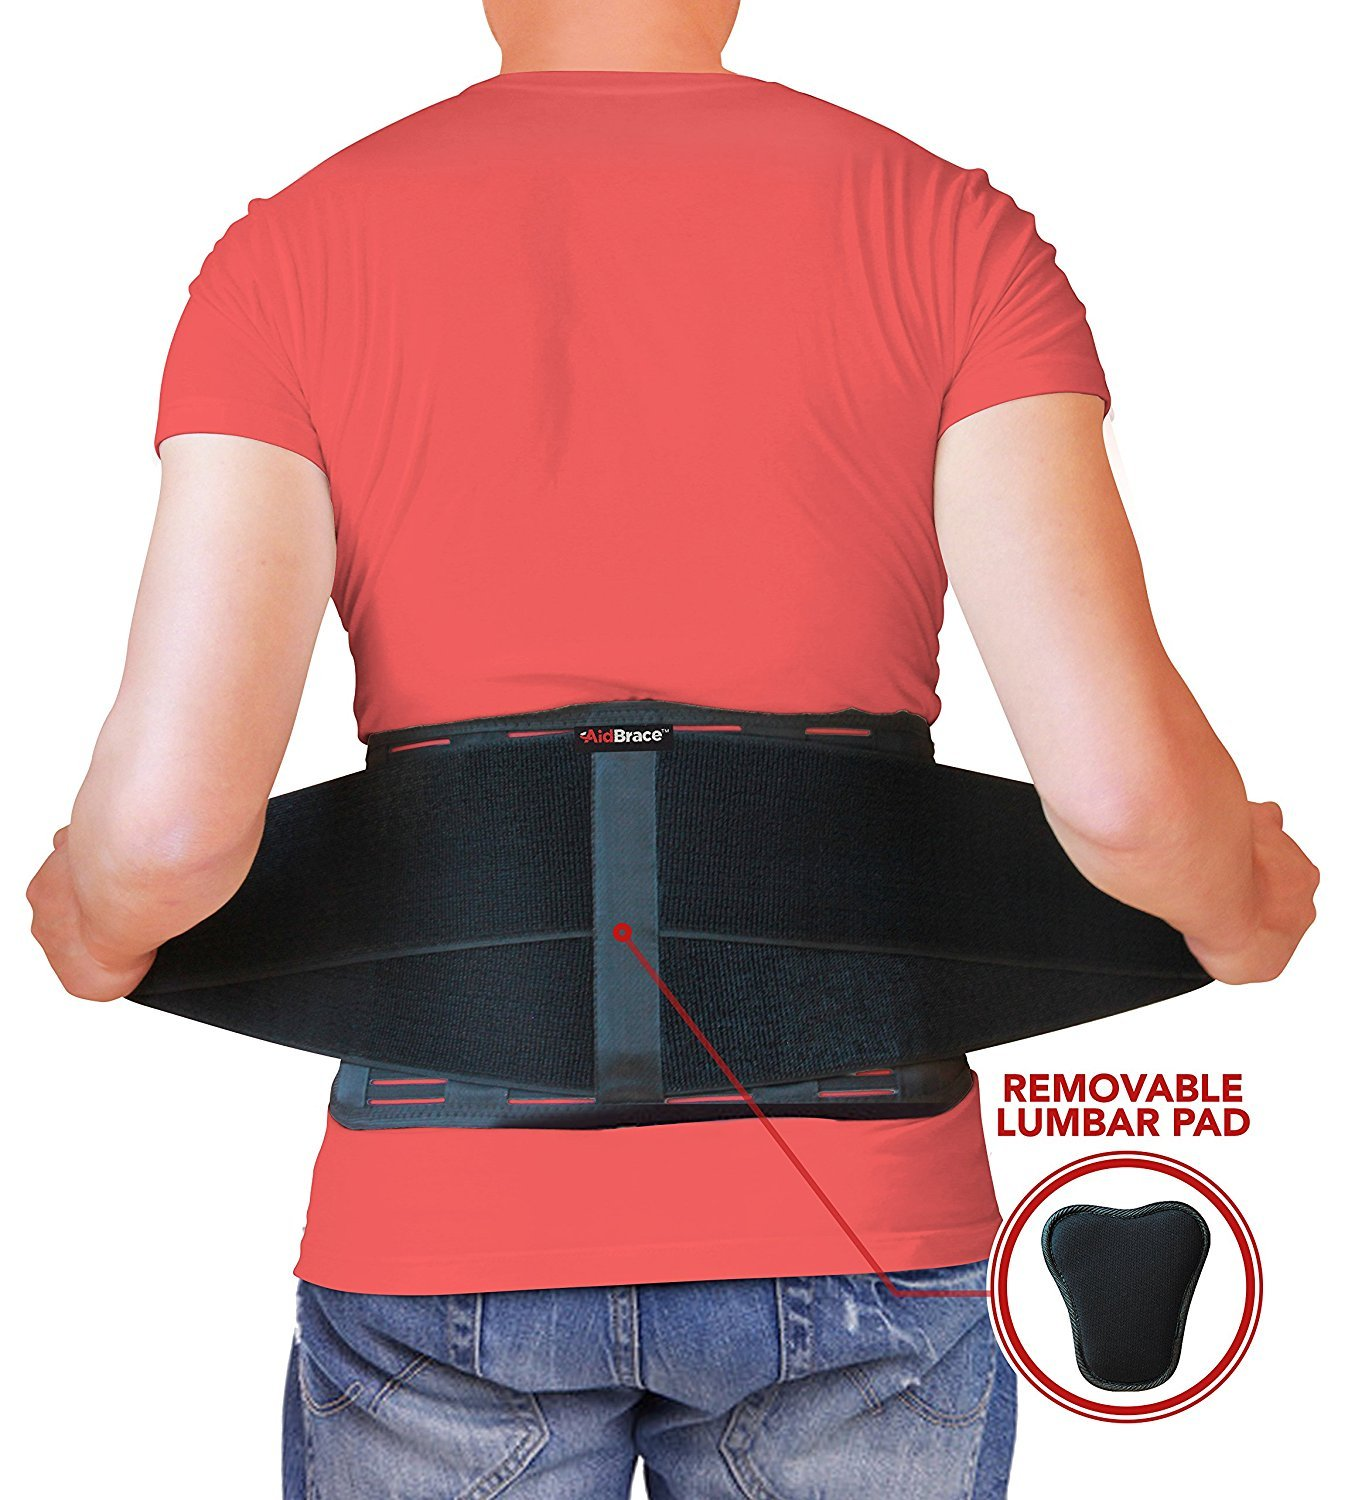 AidBrace Back Brace Support Belt - Back Pain Relief for Herniated Disc, Sciatica, and Scoliosis for Men & Women - Includes Removable Lower Lumbar Pad (L/XL)